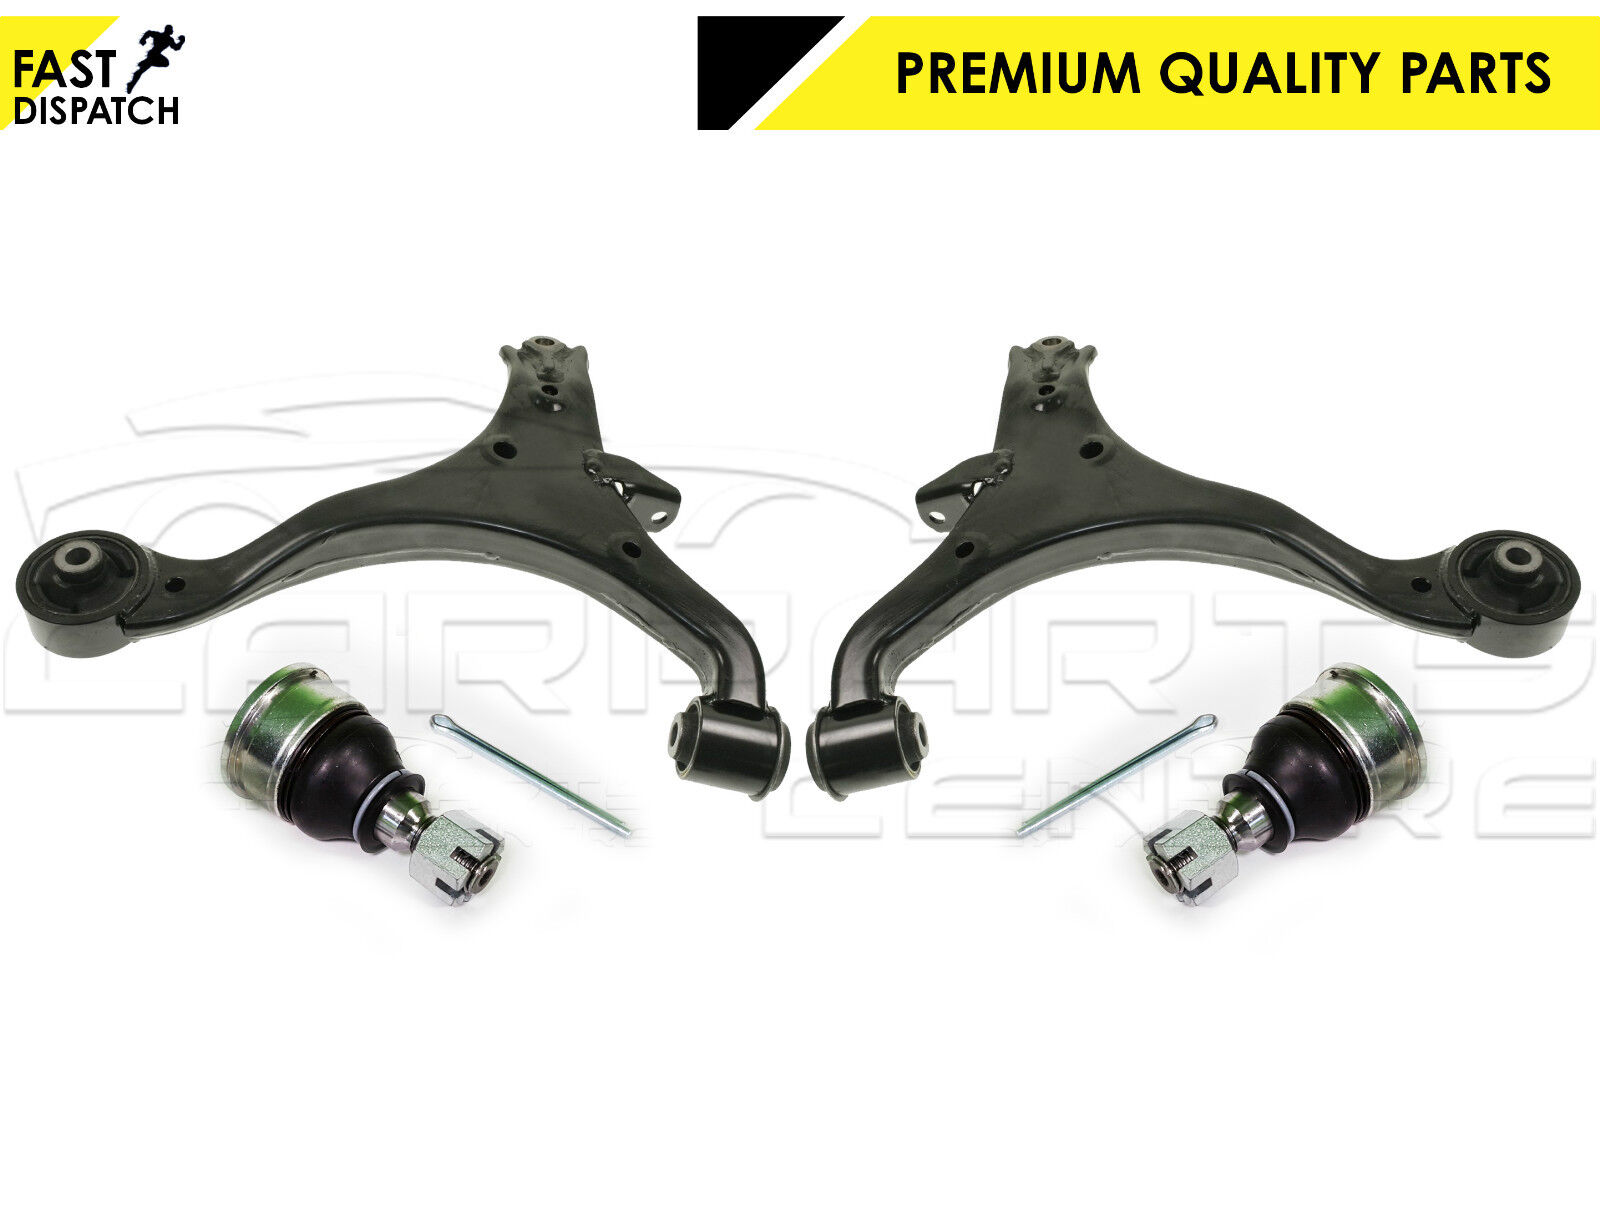 FOR CIVIC EU EP 01-06 FRONT LOWER CONTROL ARMS BALL JOINTS HD ANTI ROLL BAR LINK